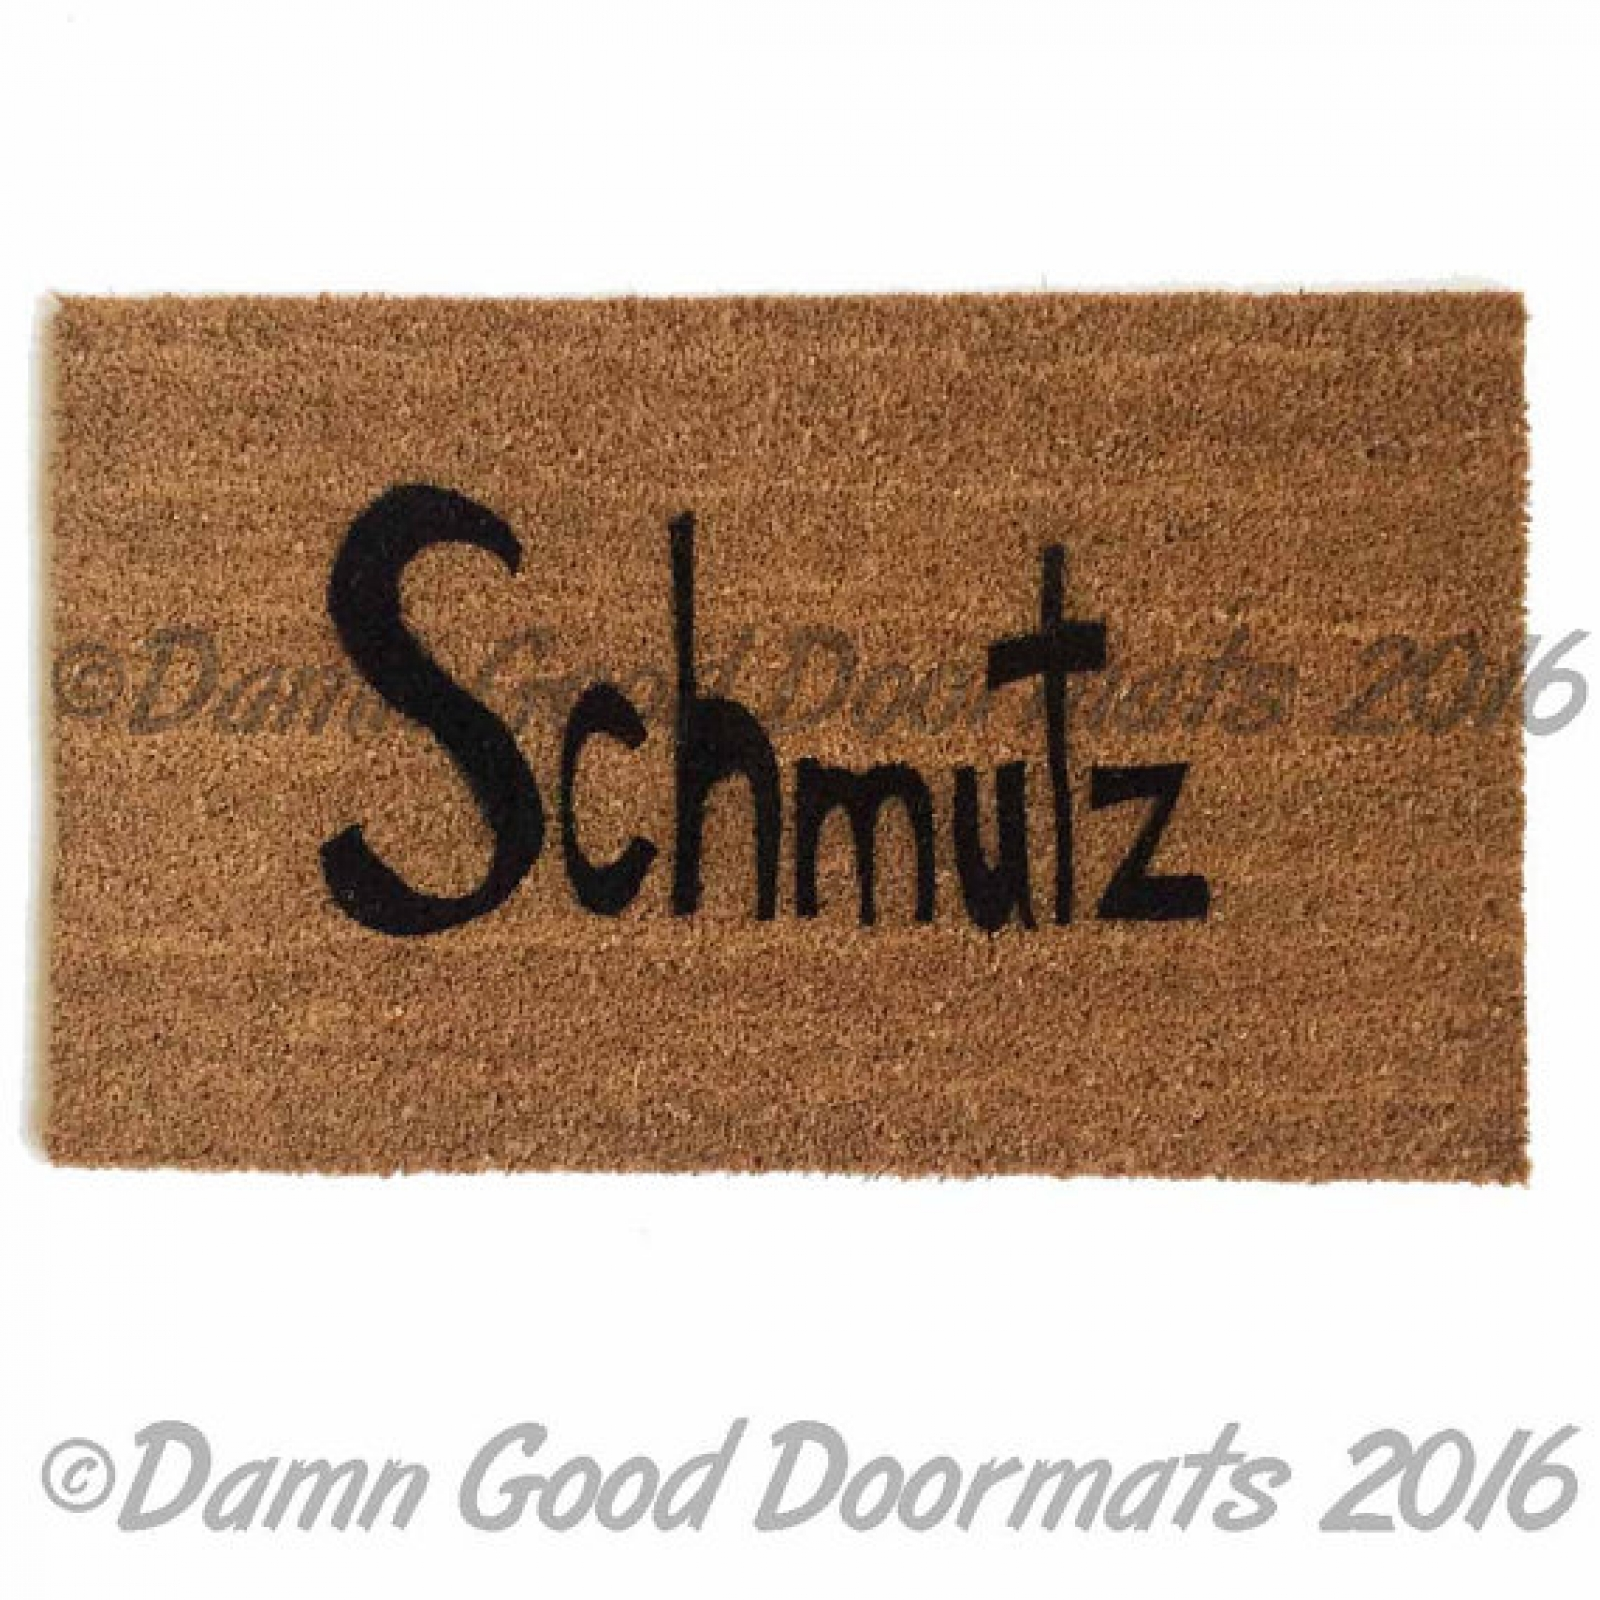 Dog Rug To Catch Dirt: Shalom Y'all™ Jewish Novelty Welcome Doormat By Damn Good